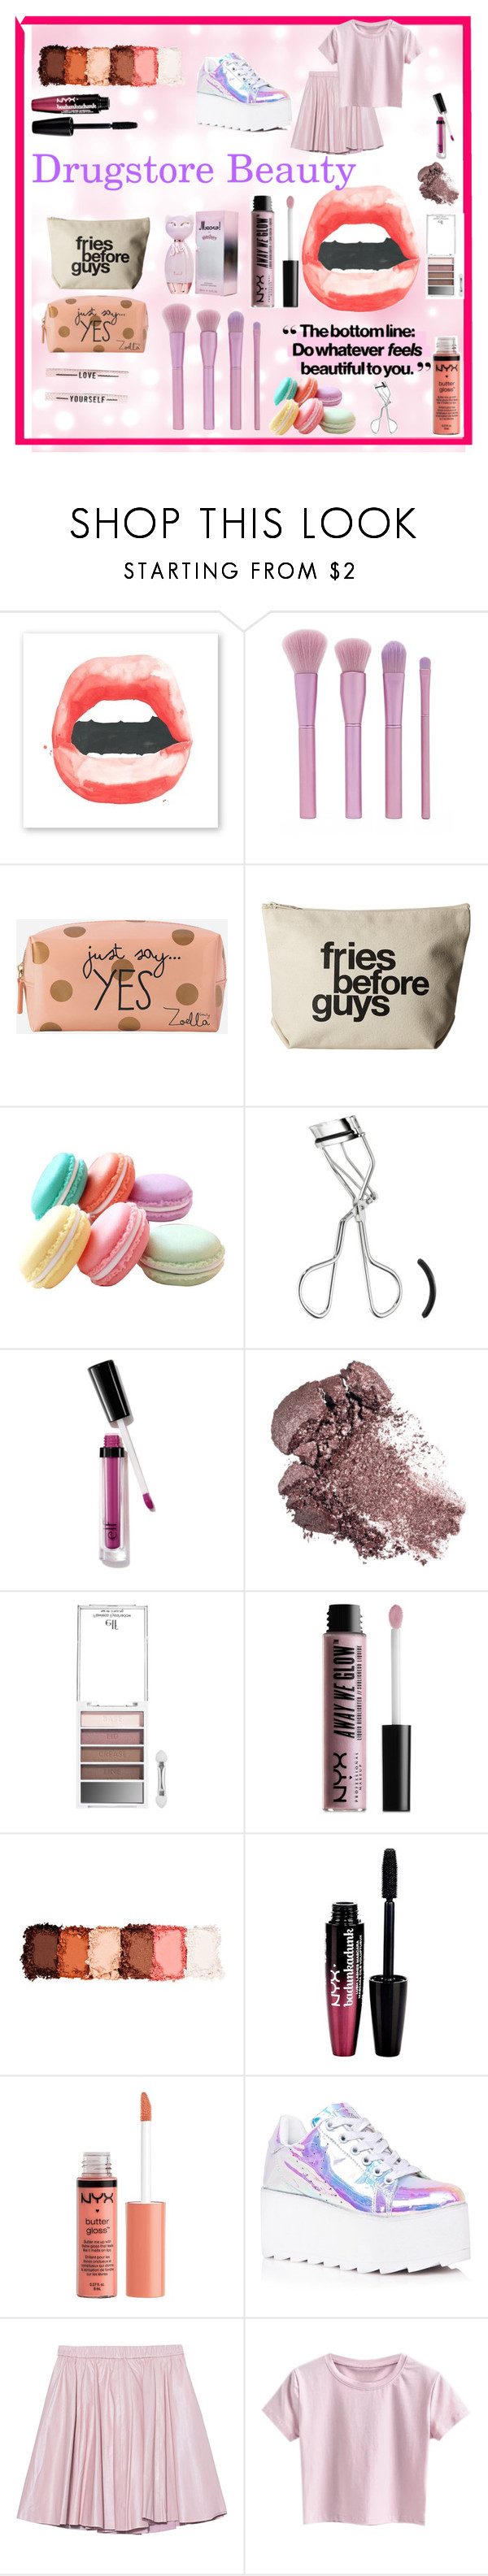 """Beauty"" by bitty-junkkitty ❤ liked on Polyvore featuring beauty, Forever 21, Zoella Beauty, Dogeared, NYX, Charlotte Russe, Y.R.U. and 2NDDAY"